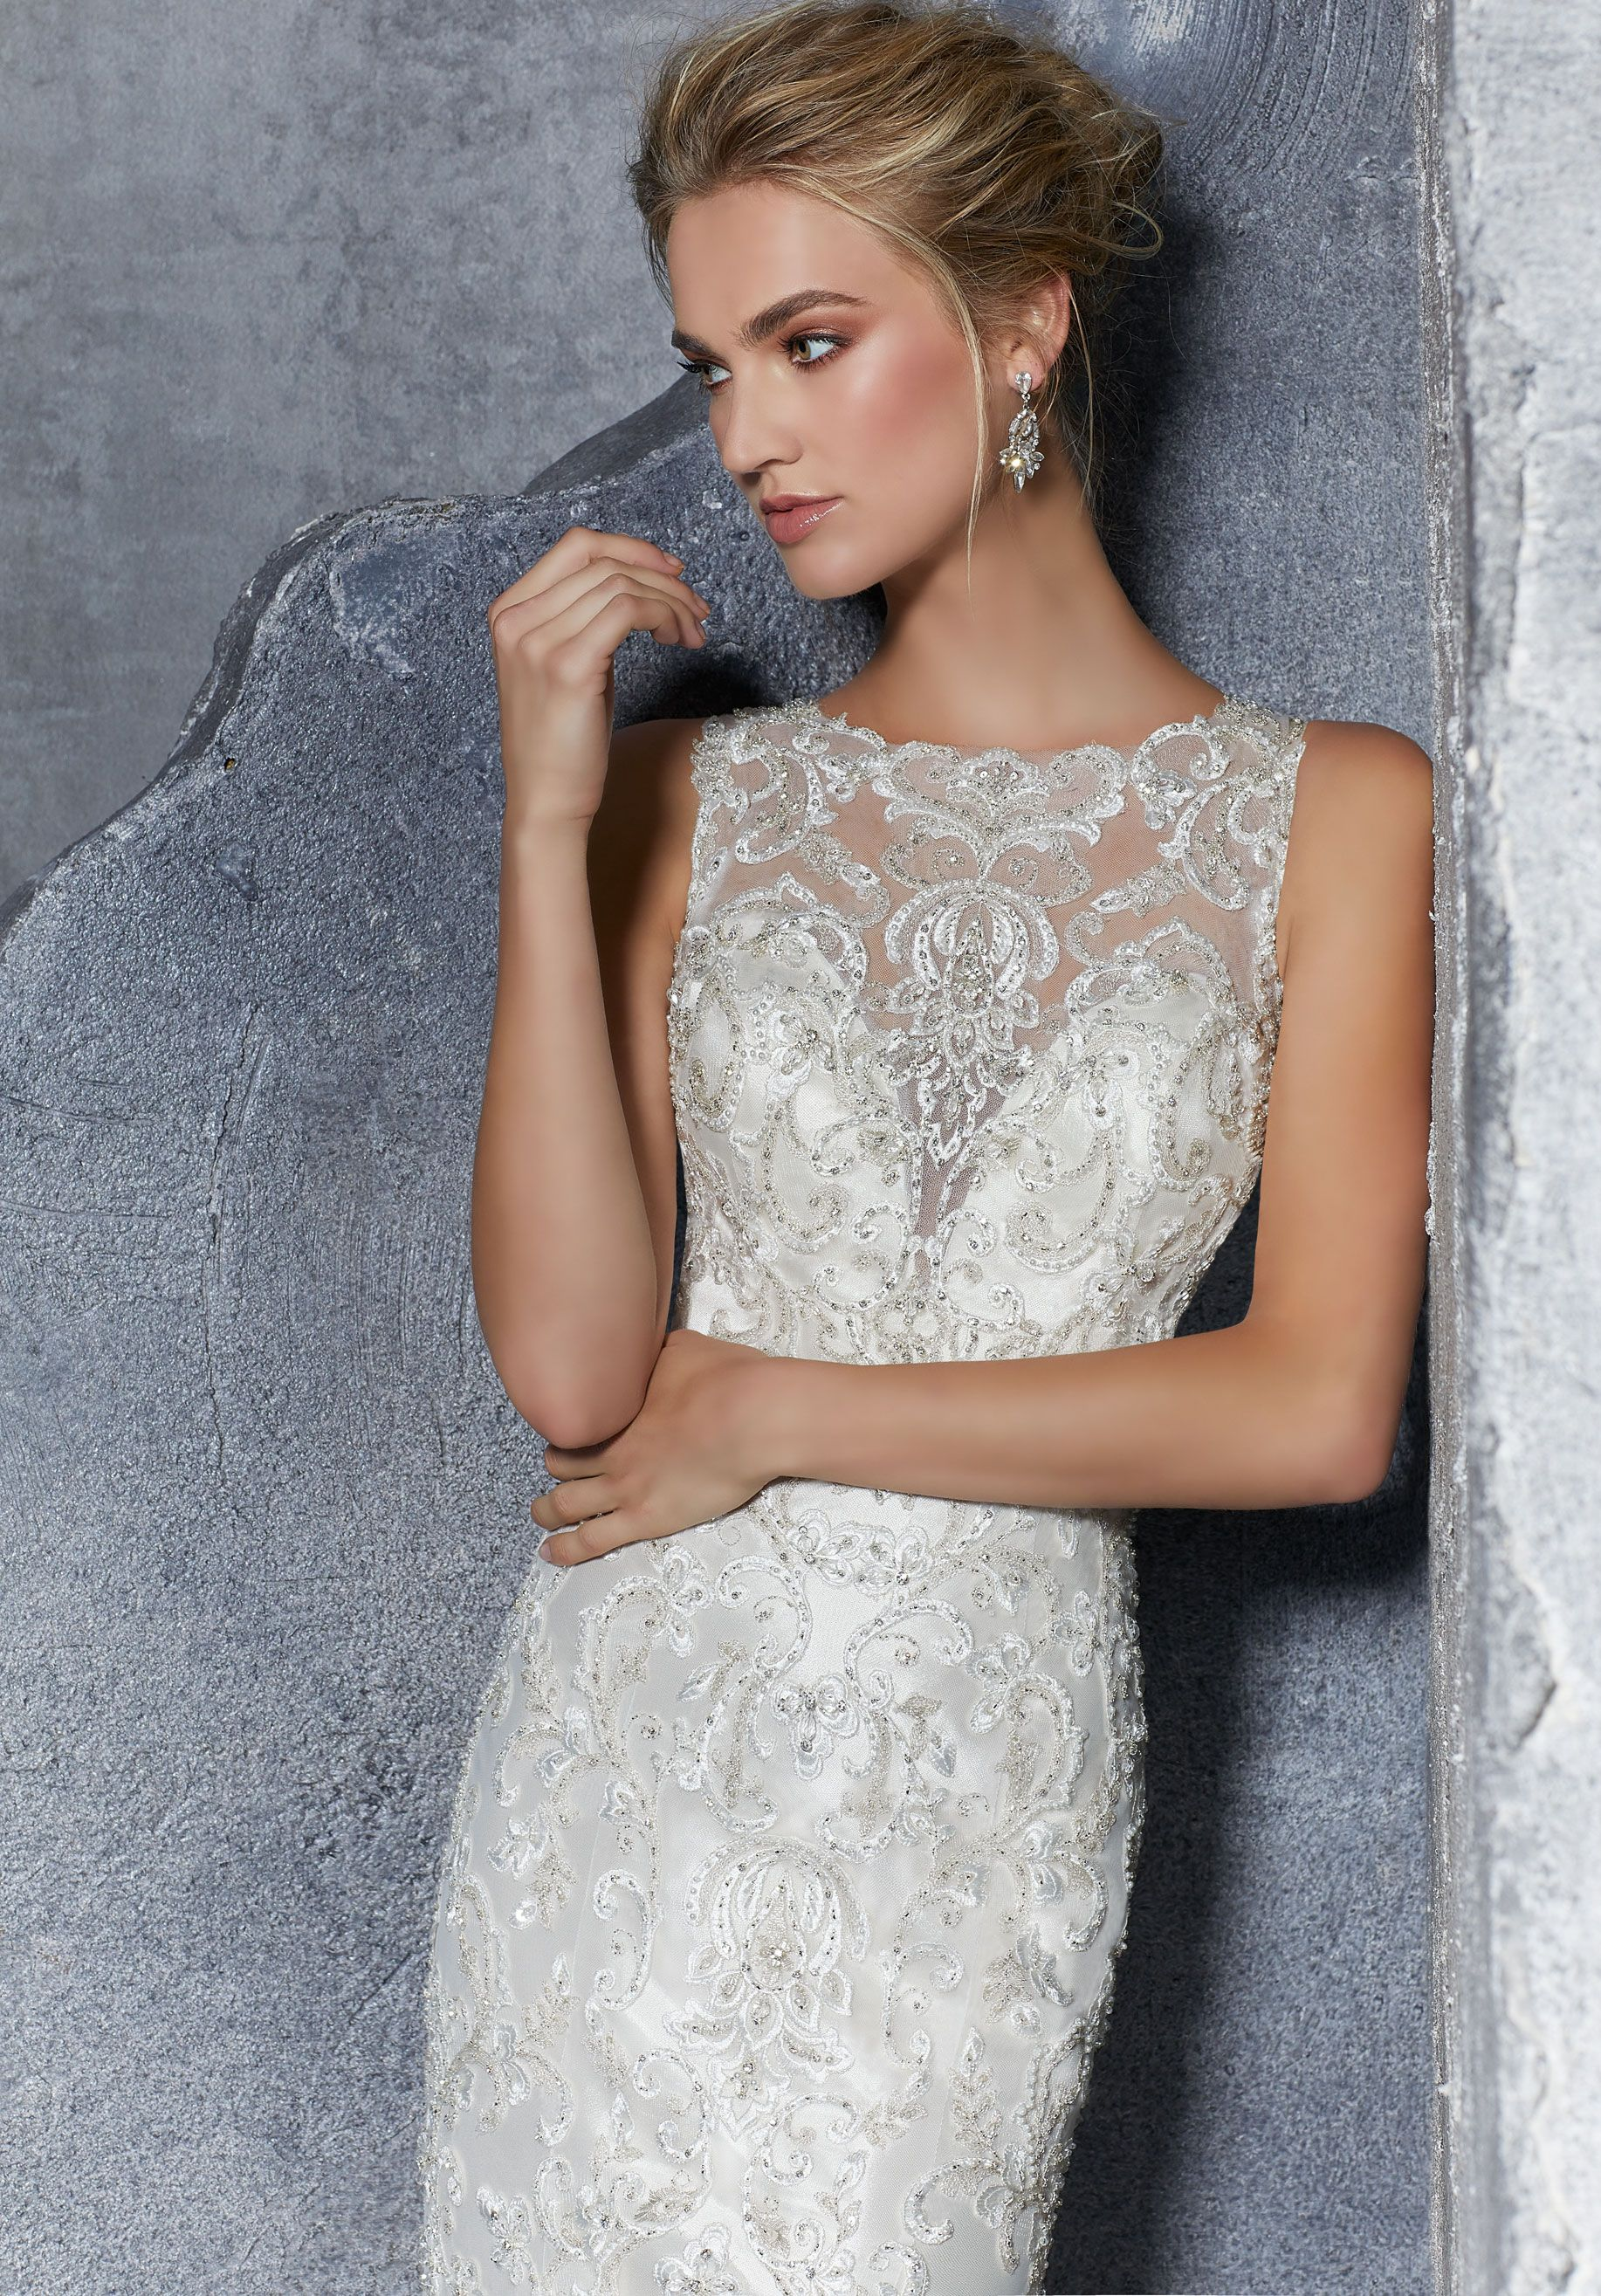 Lace dress for wedding  High cut beaded and lace gown  Bridal Gowns  Pinterest  Gowns